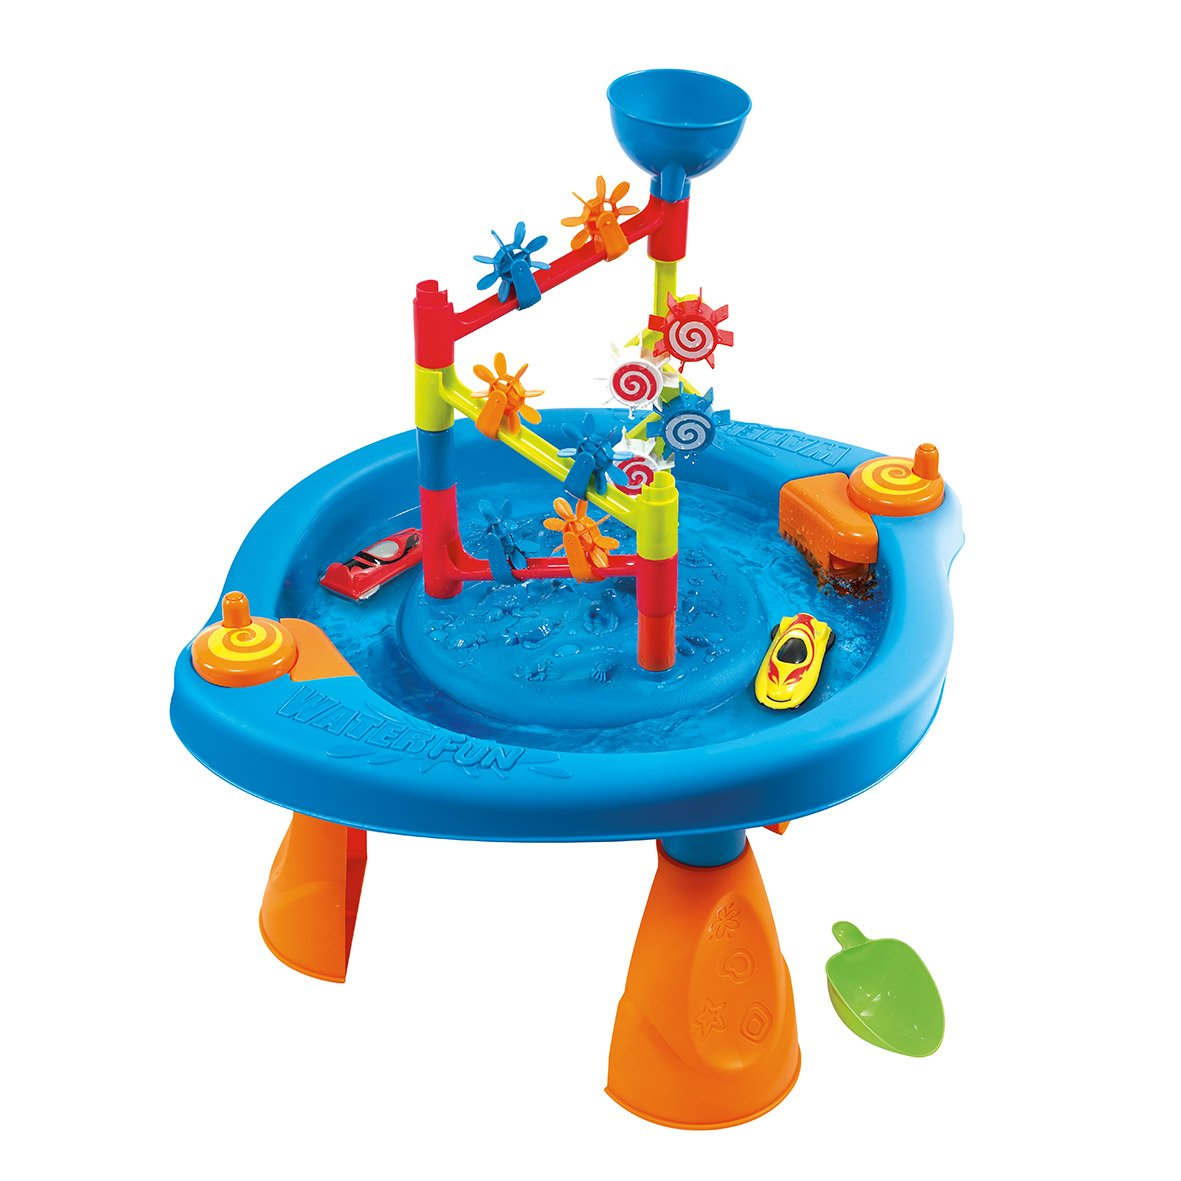 PlayGo Fun Wheels Water Activity Play Water Lawn Sprinklerse Toddlers Toys for 1 2 3 Year Old Pretend Play Activities by PlayGo (Image #1)